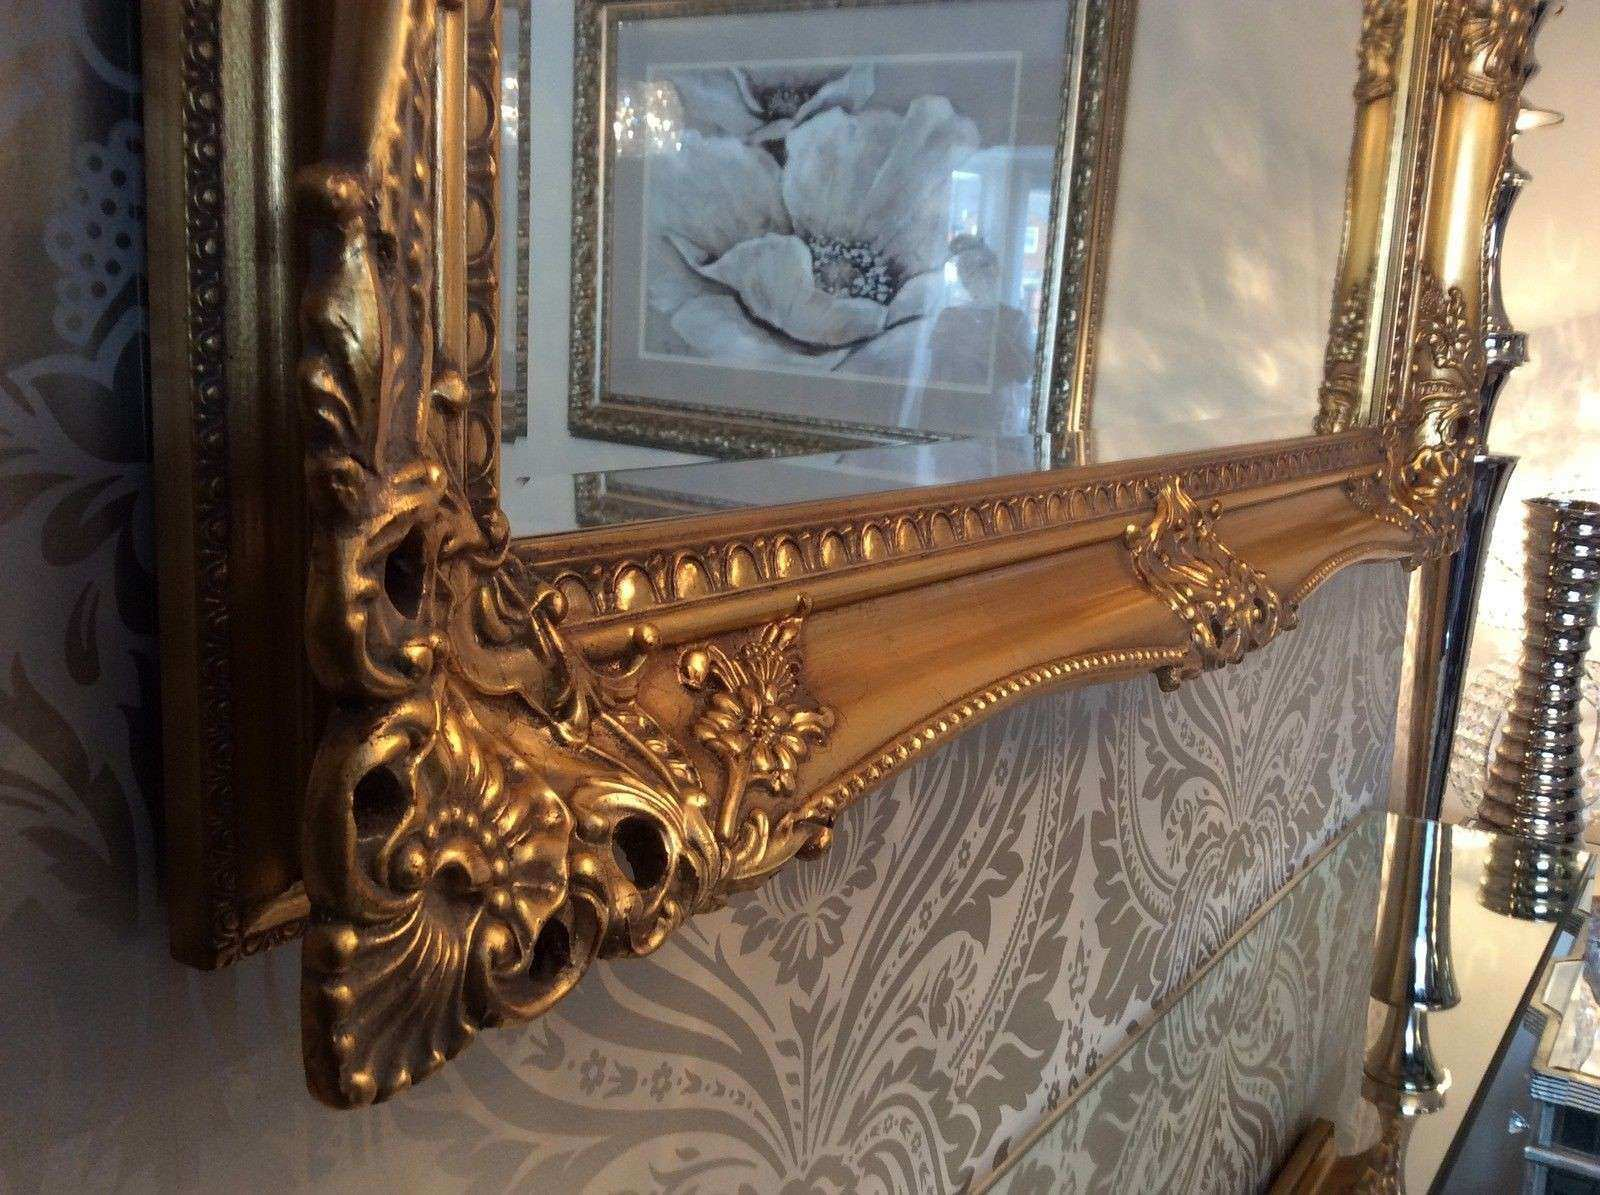 X LARGE Antique GOLD Shabby Chic Ornate Decorative Wall